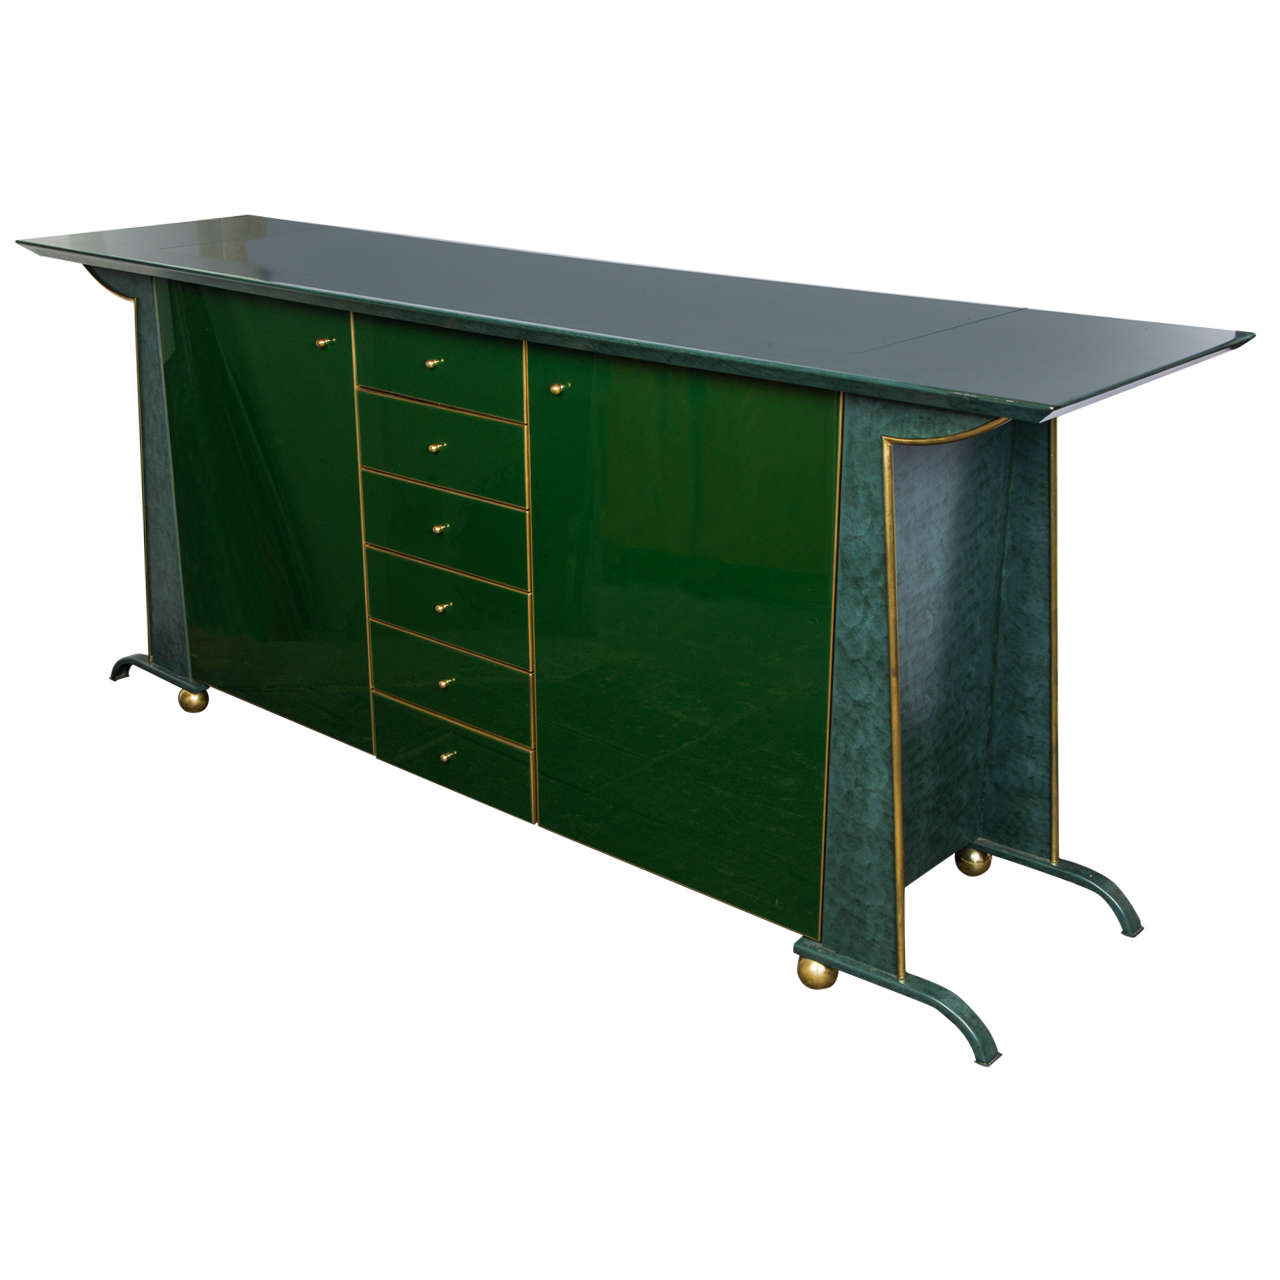 1970s belgium metal and glass sideboard at 1stdibs for Sideboard glas